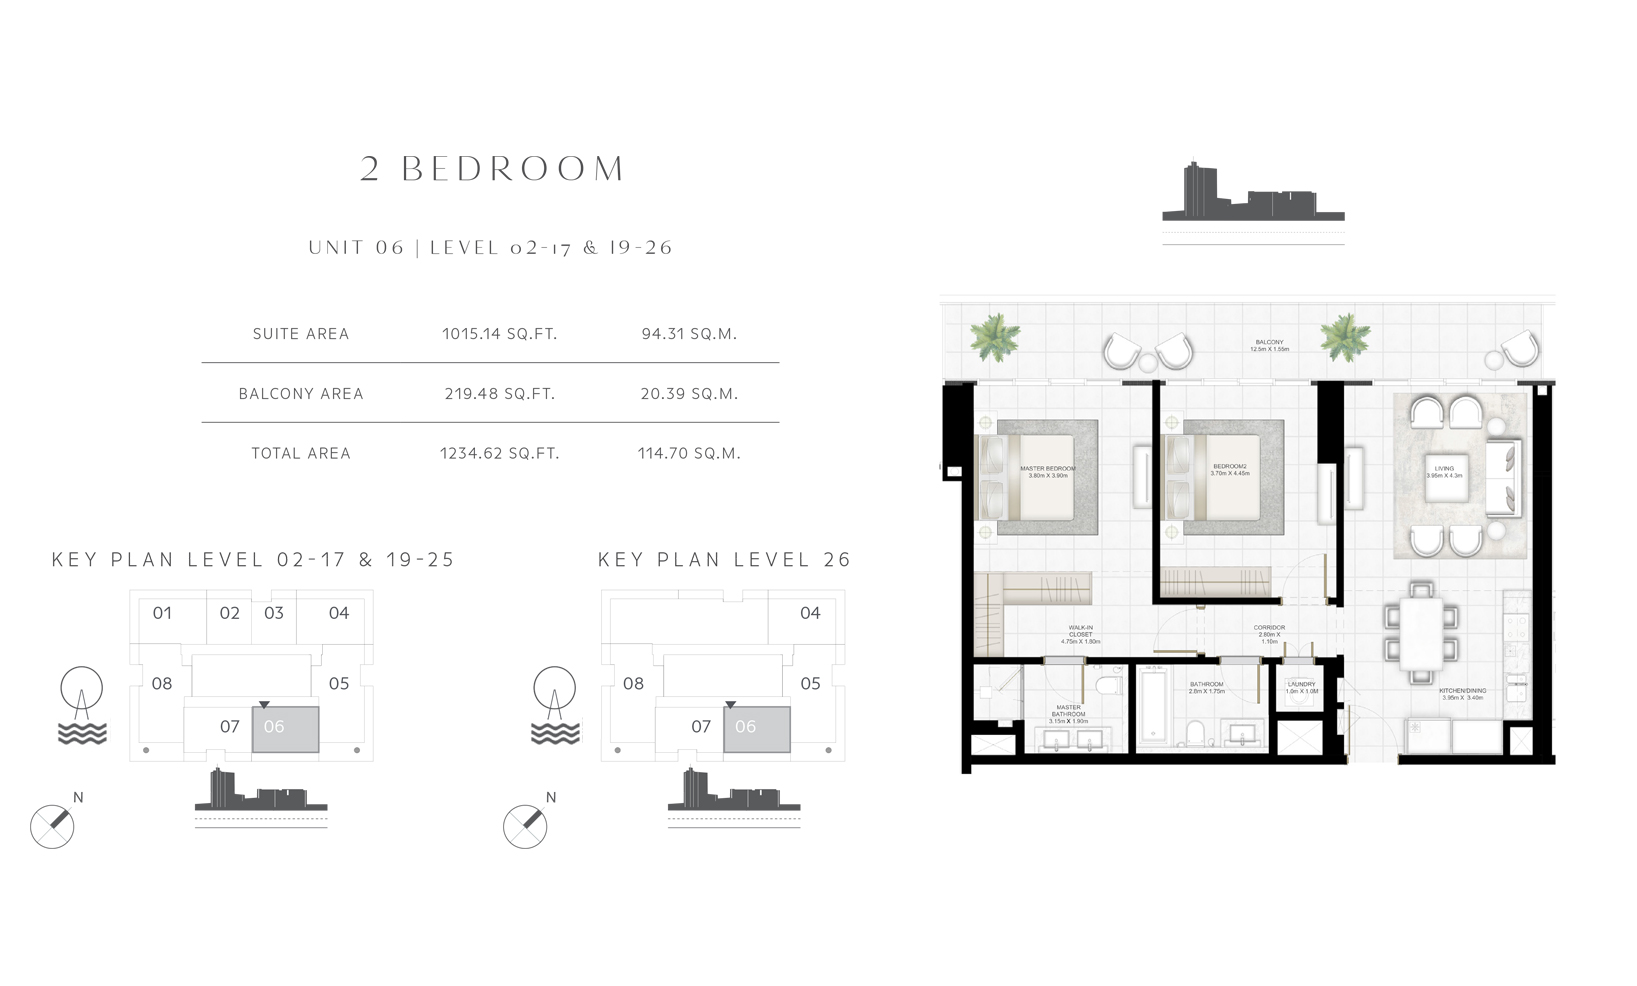 2 Bedroom Unit 06-08 Level 02-17 & 19-26 Size 1234.62 sq.ft